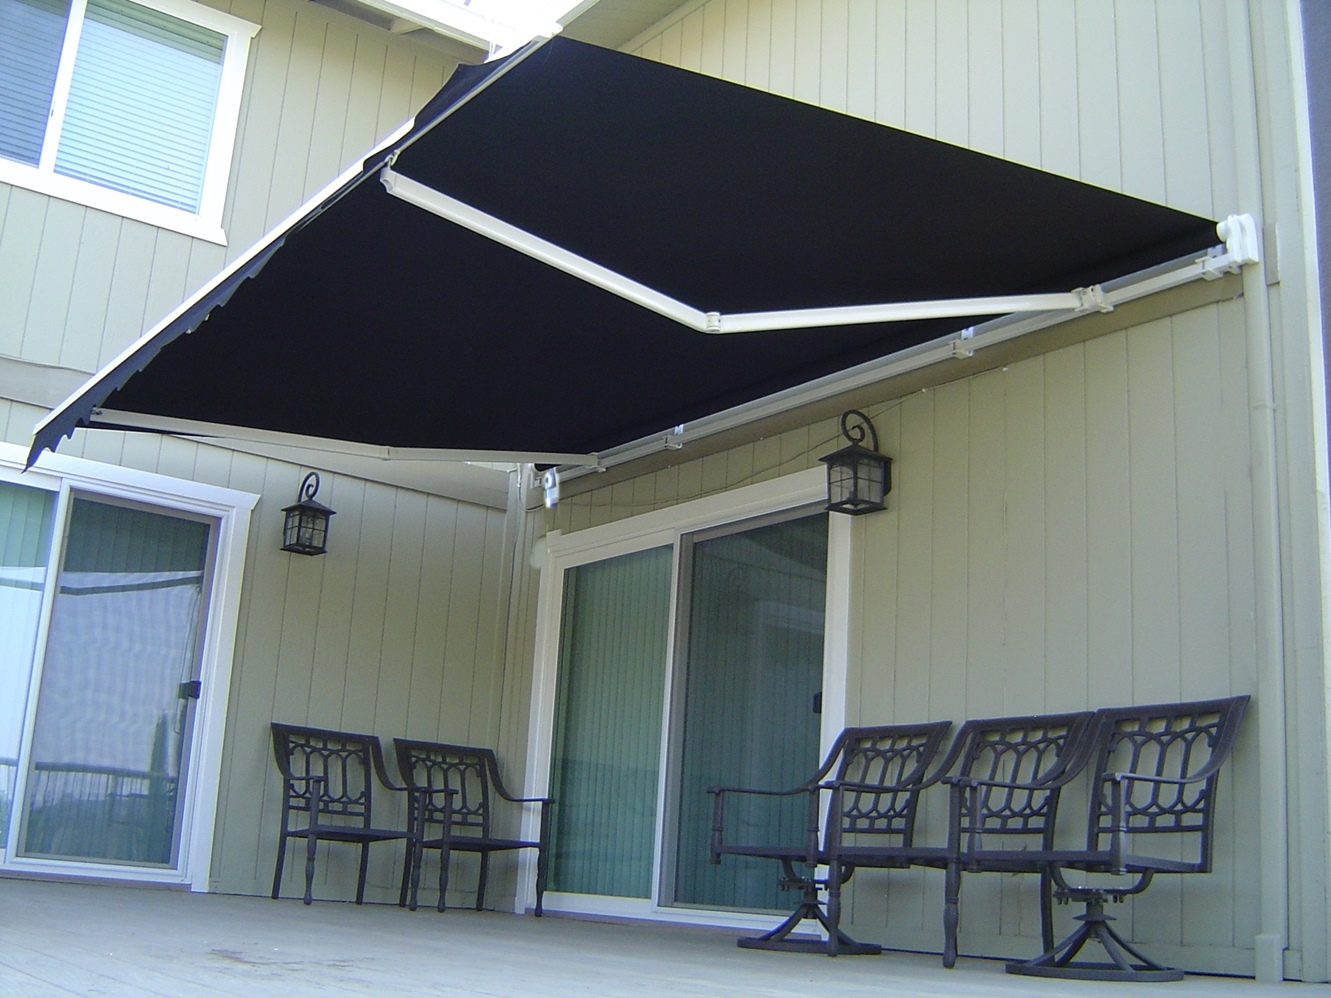 The Best in Home Improvements with Outdoor Awnings